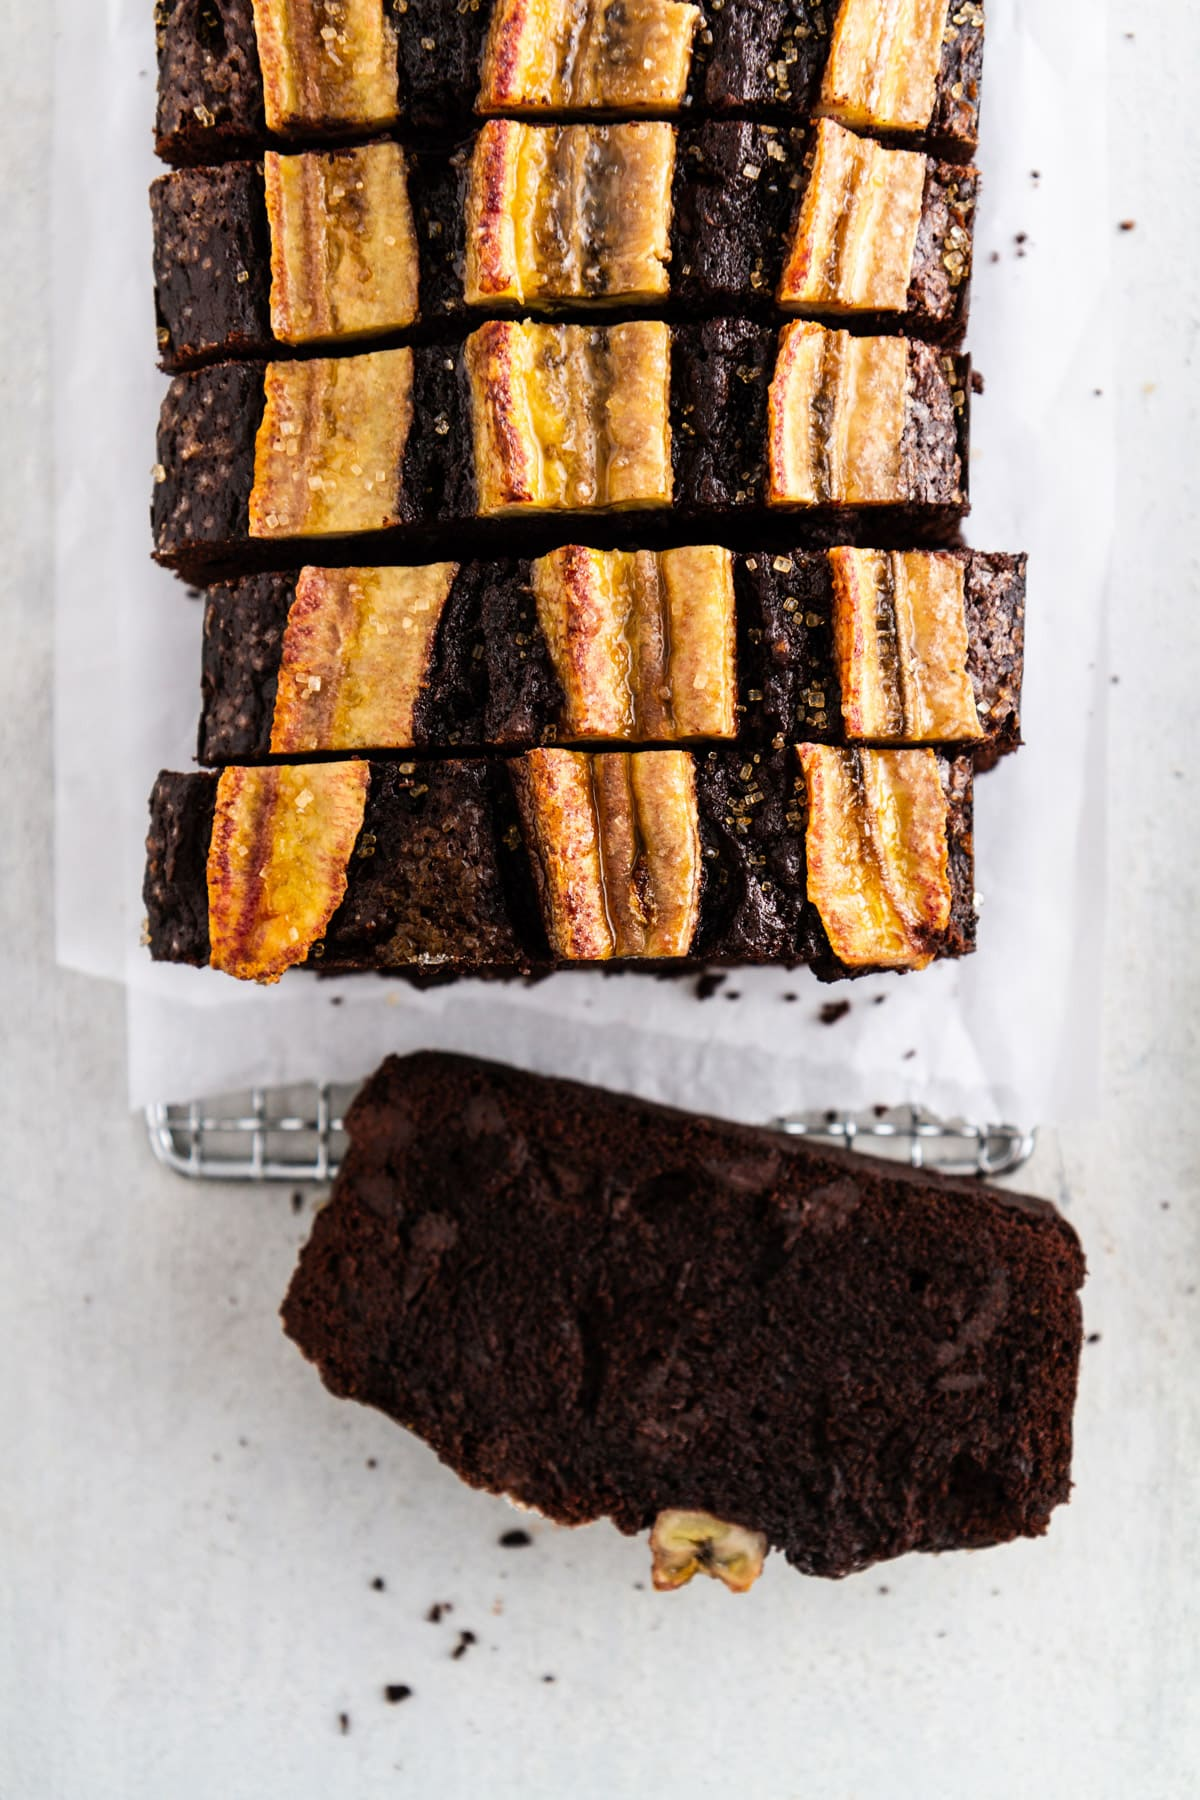 a slice of chocolate banana bread on its side